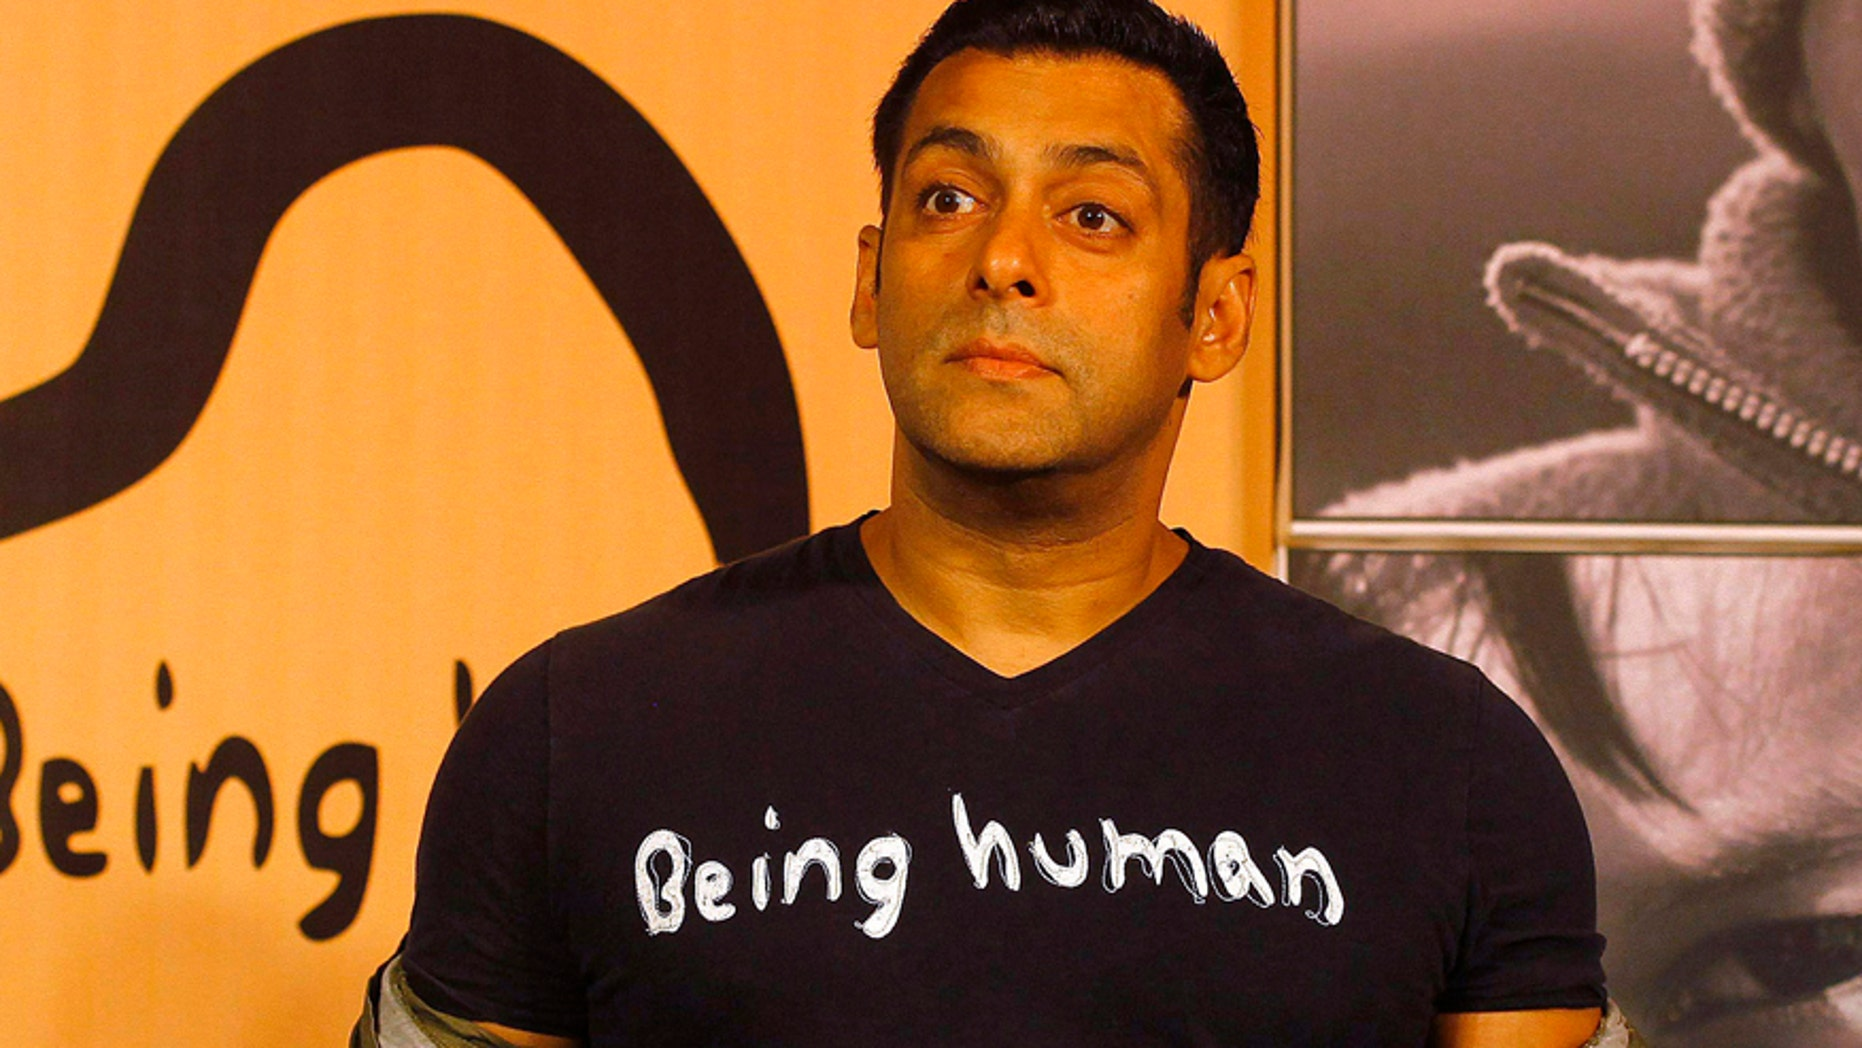 In this Jan. 17, 2013 file photo, Bollywood star Salman Khan poses wearing a Being Human t-shirt during the launch of Being Human's first flagship store in Mumbai, India.